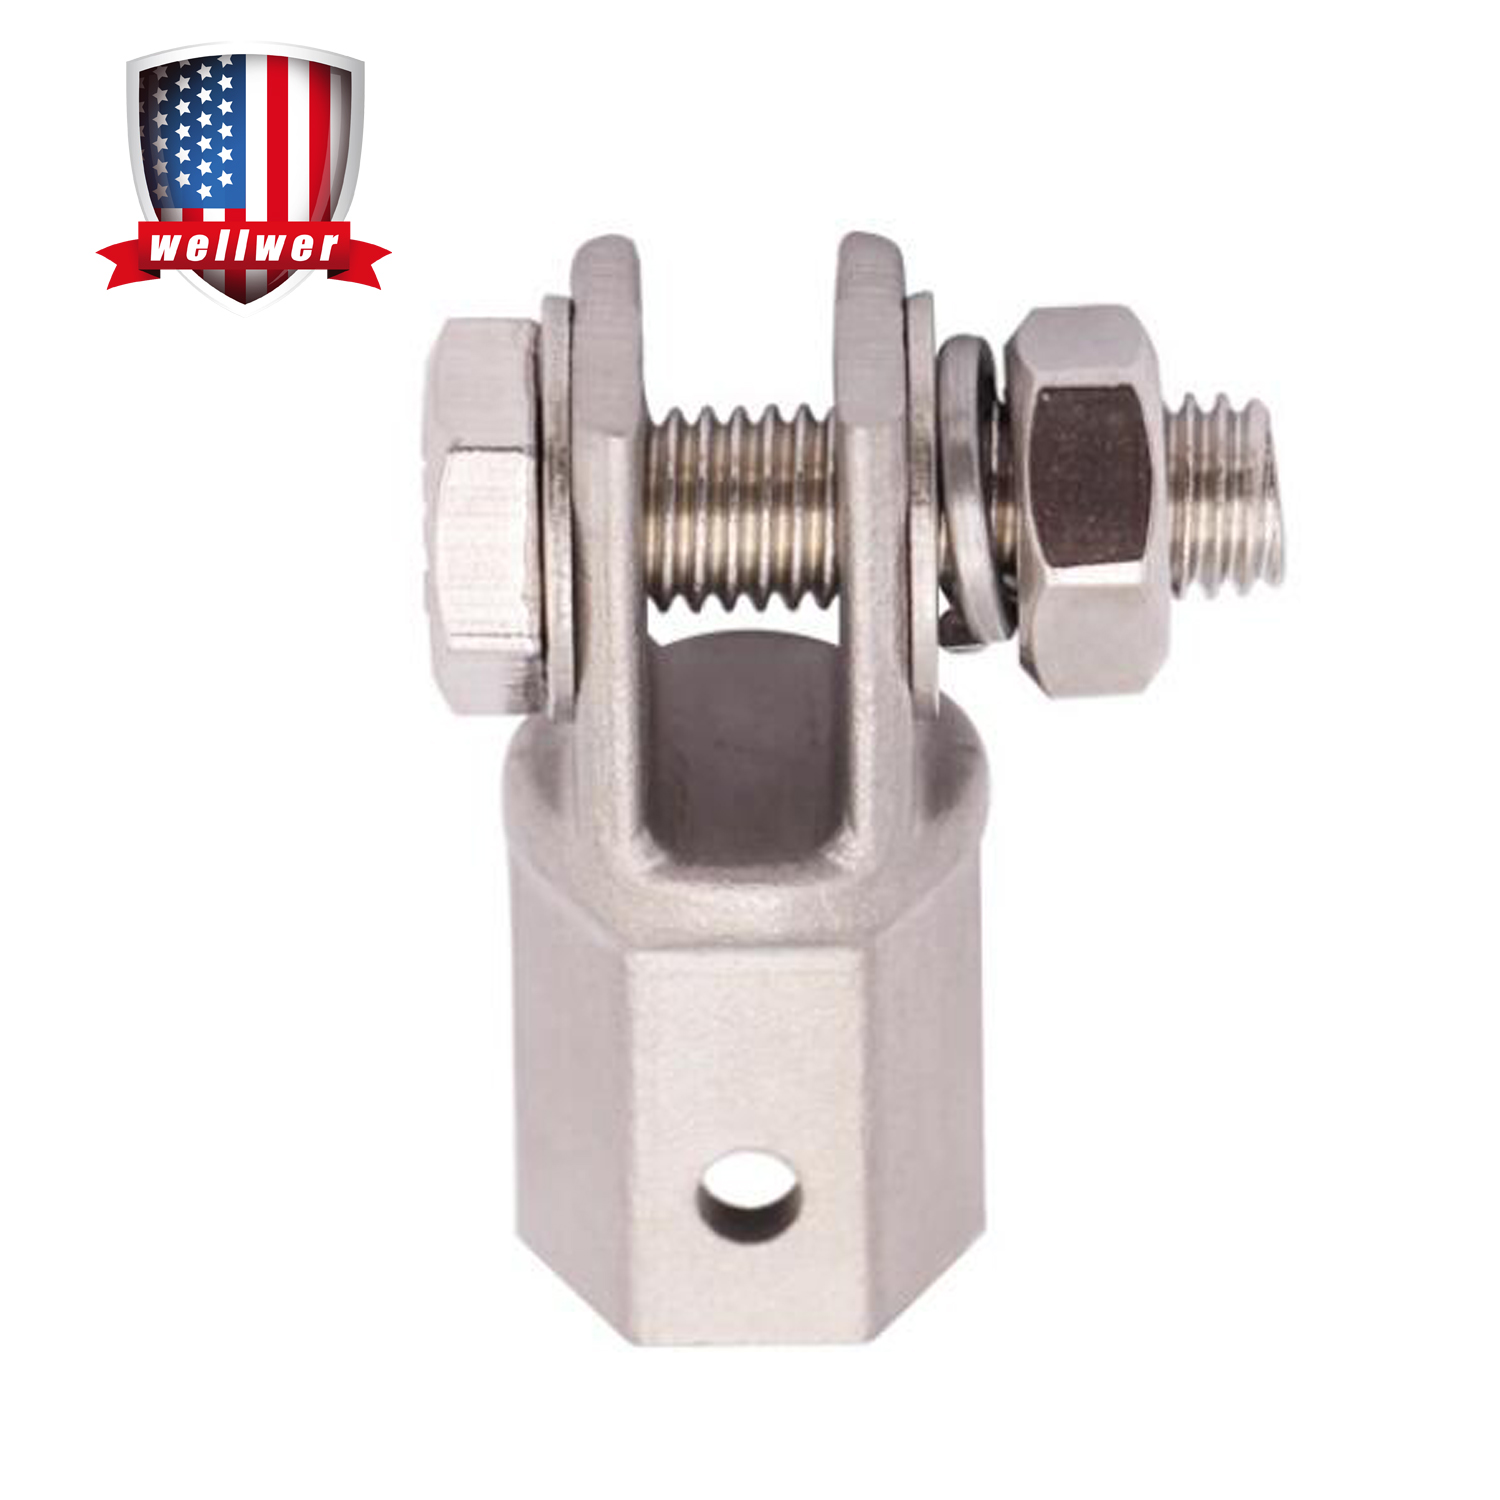 Katigan Scissor Jack Adaptor 1//2 Inch for Use with 1//2 Inch Drive or Impact Wrench Tools IJA001